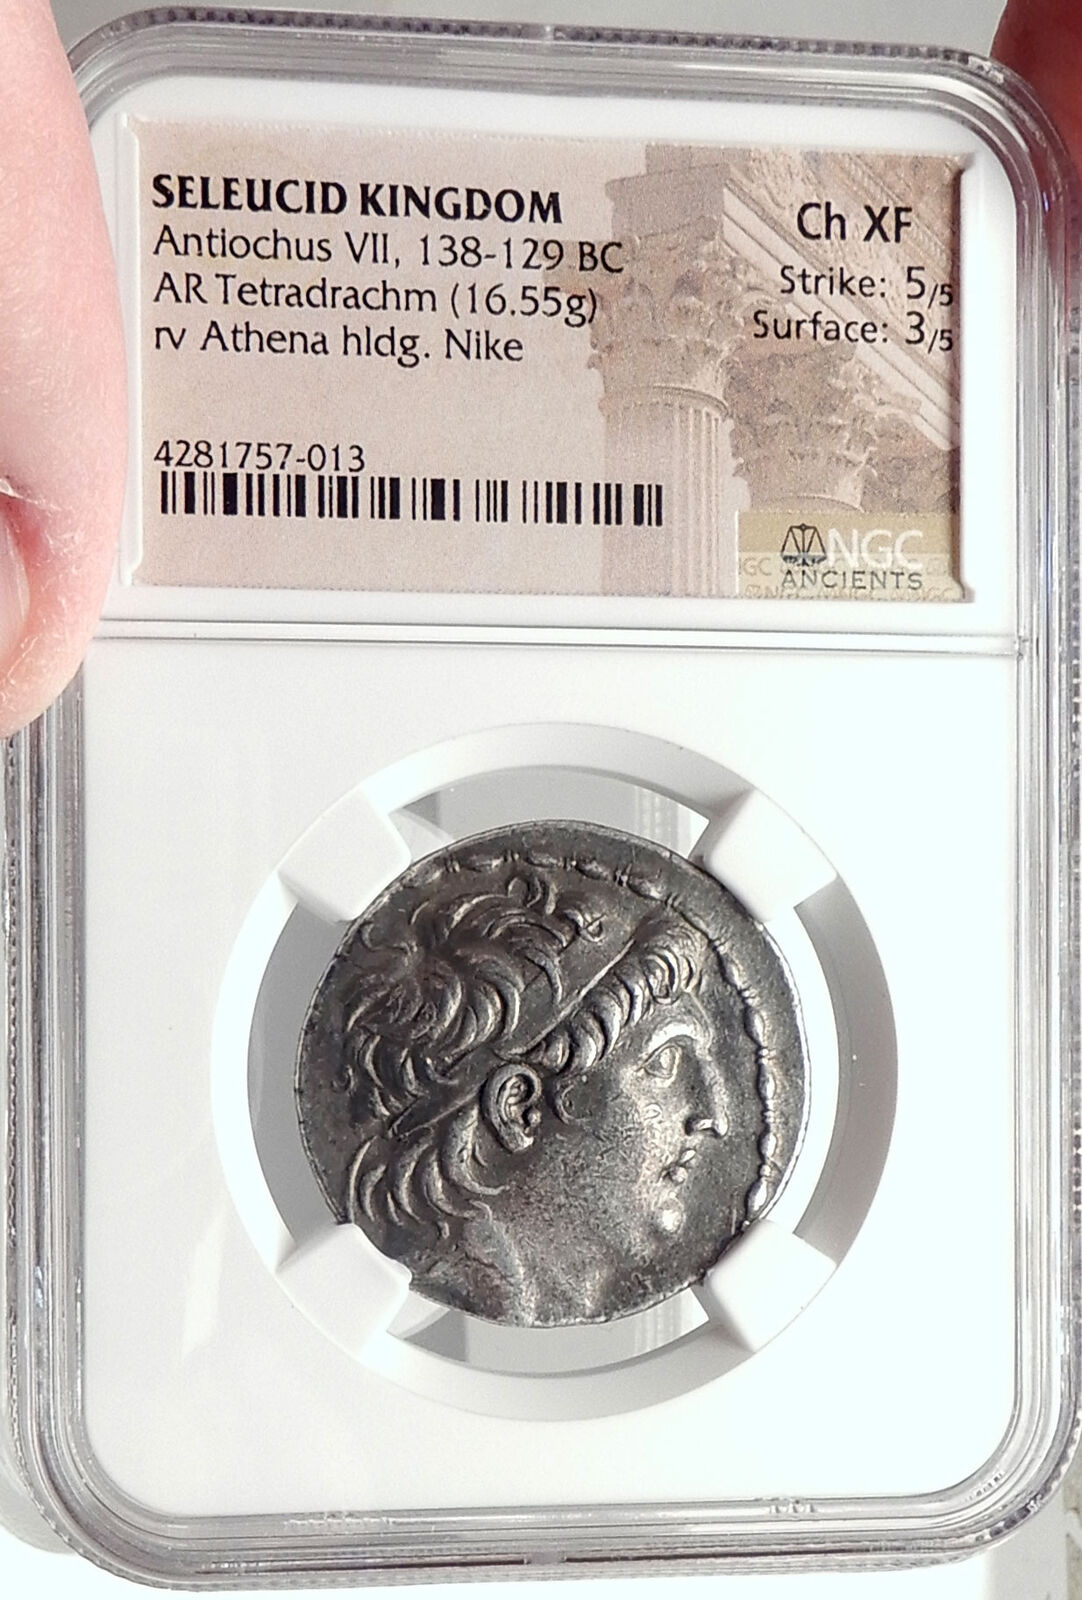 ANTIOCHOS VII Sidetes Seleukid Ancient Silver Greek TETRADRACHM Coin NGC i68736 3